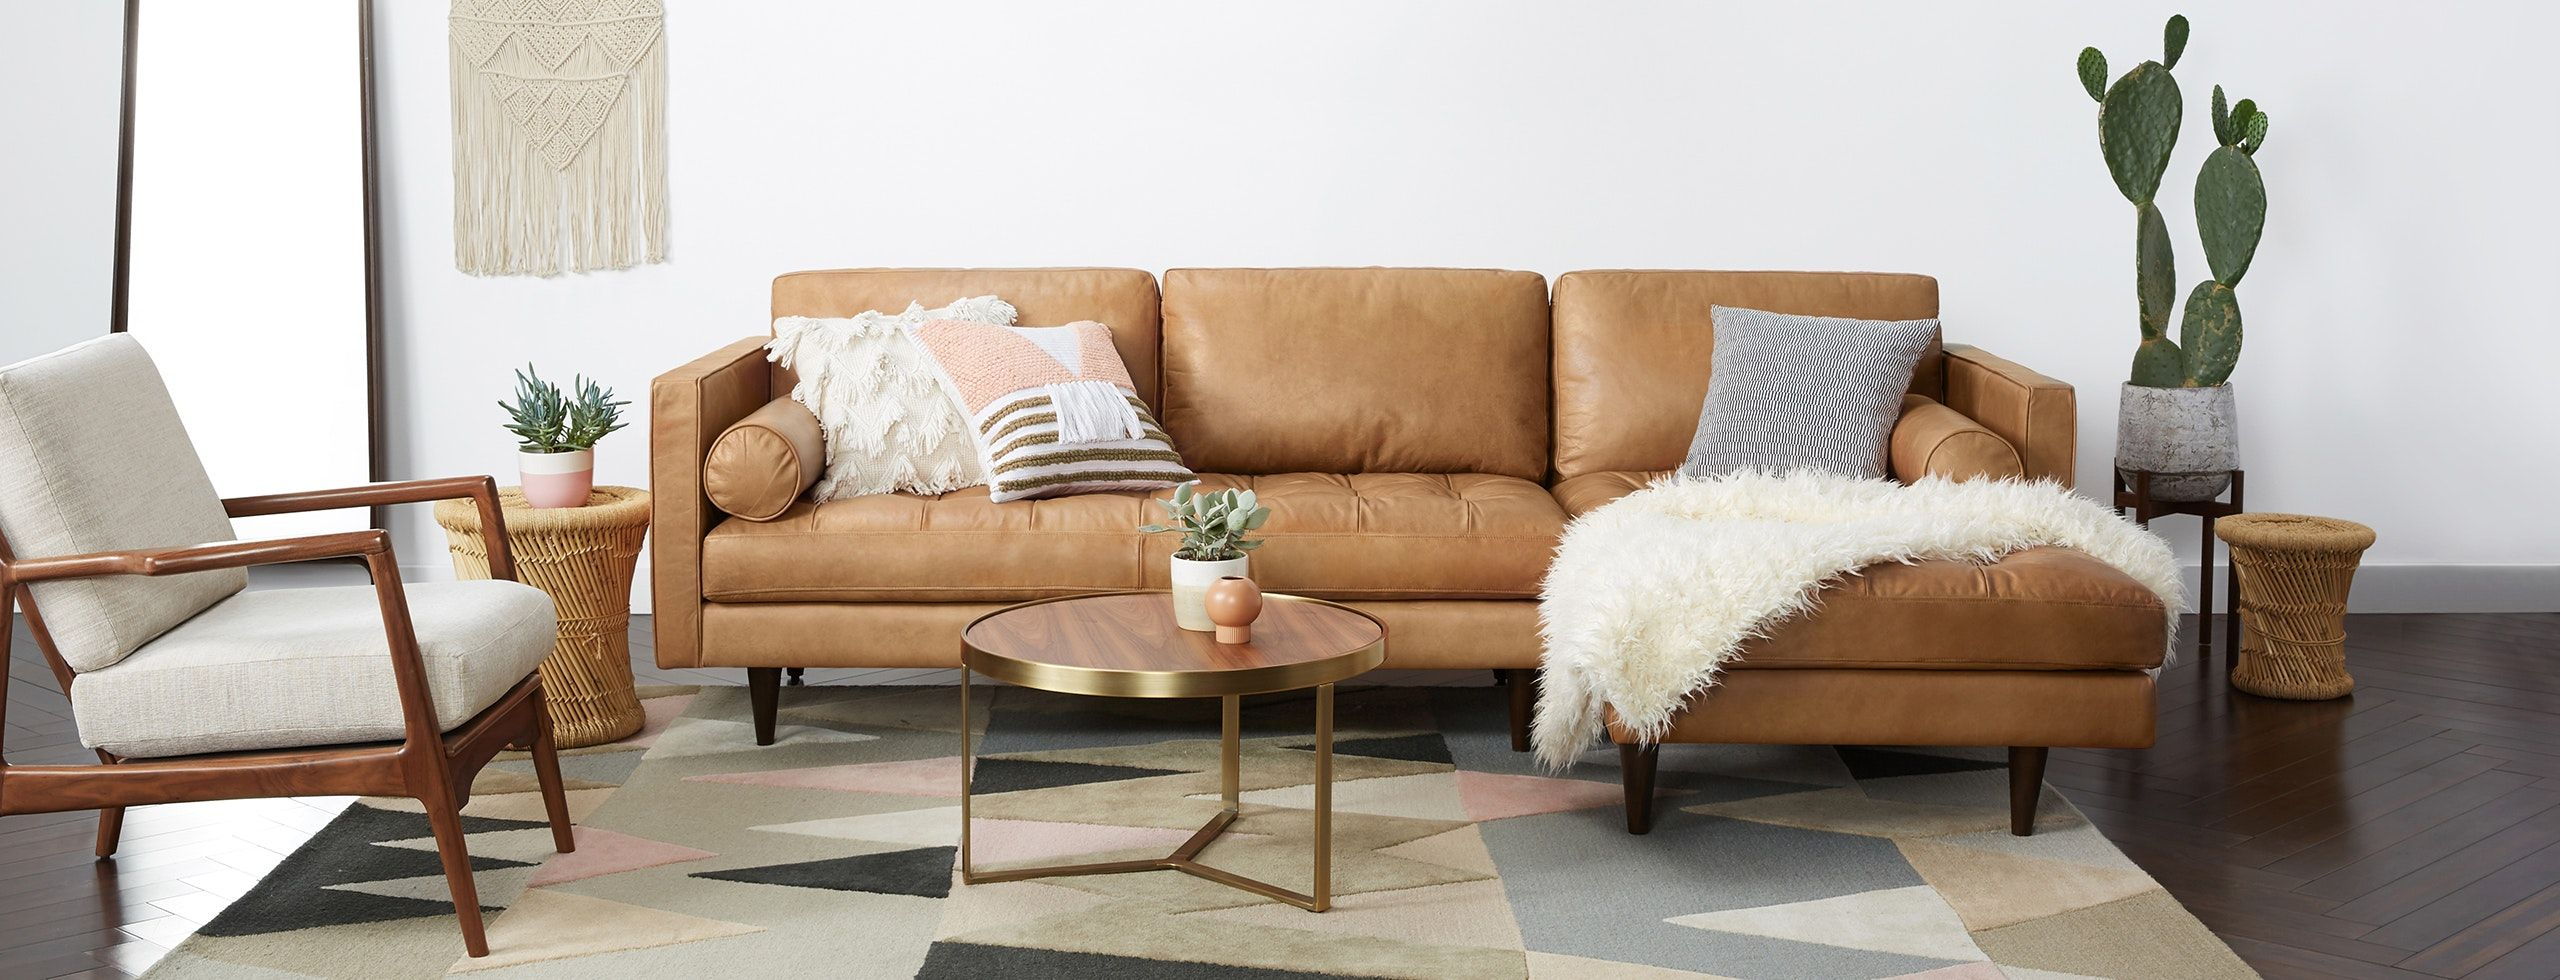 Briar Leather Sectional Leather Sectional Leather Chaise Sectional Small Apartment Living Room